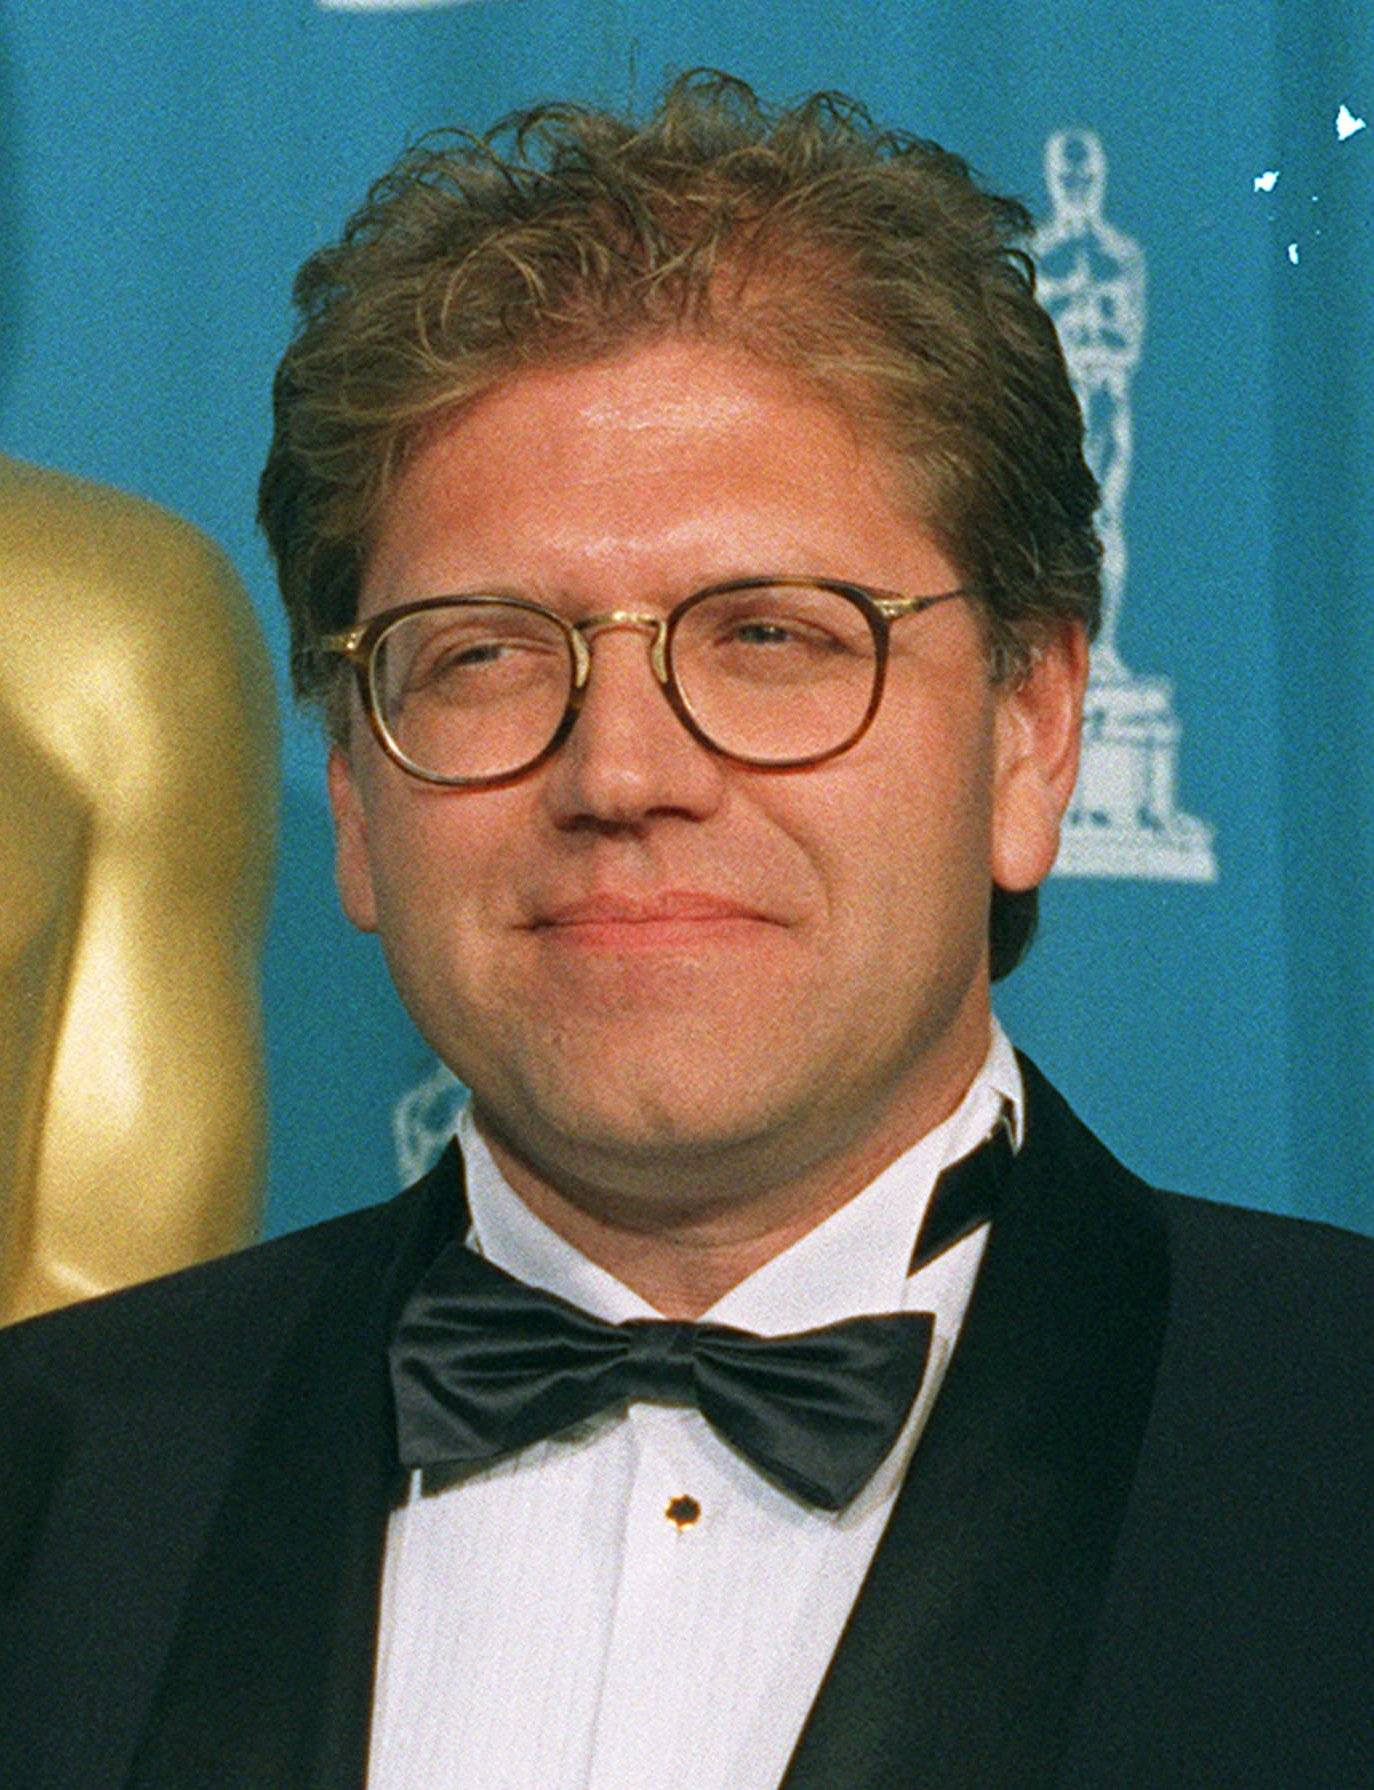 Film director Robert Zemeckis hails from Lakemoor.